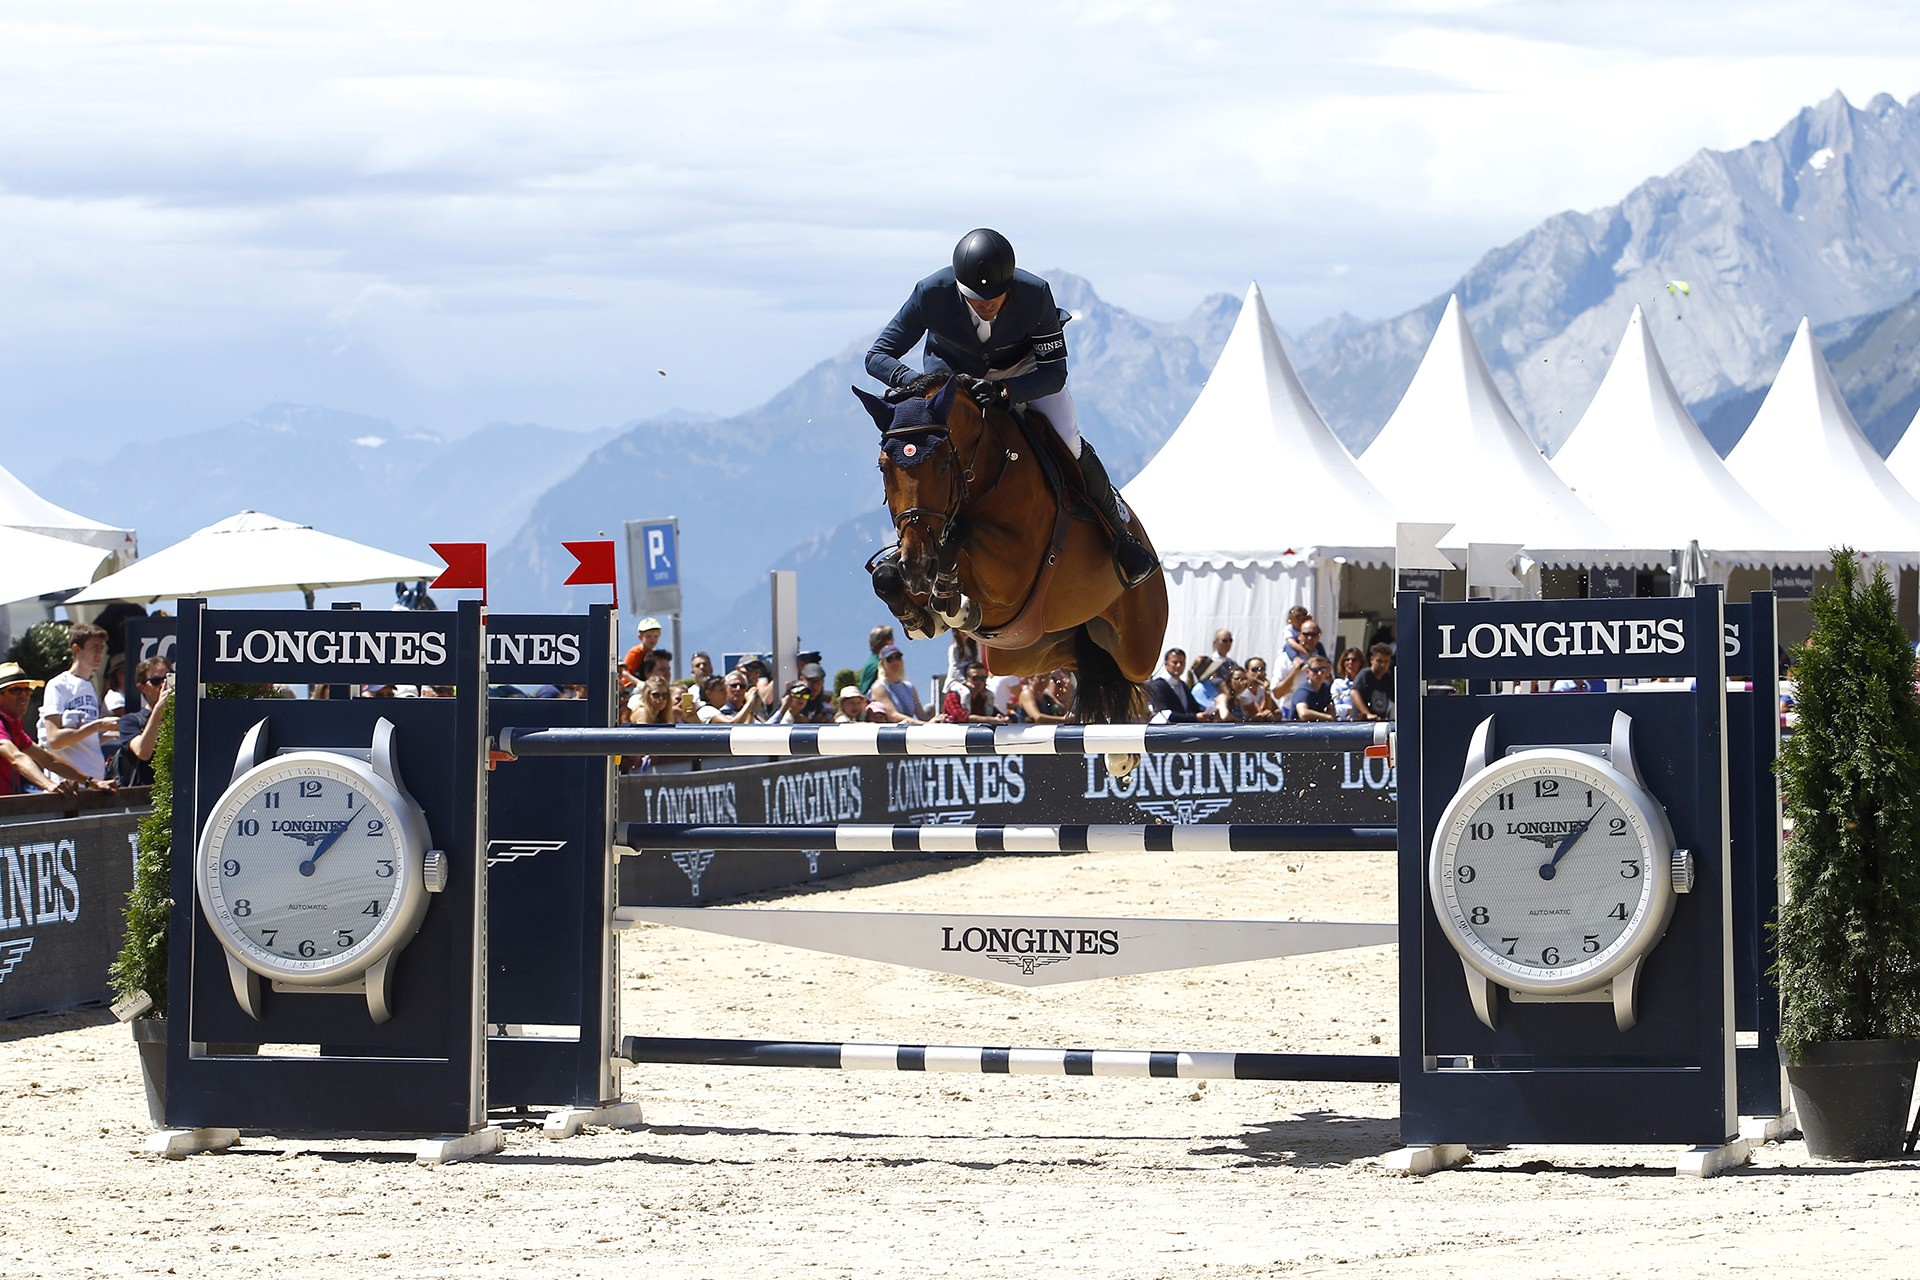 Jumping Longines | Many Way